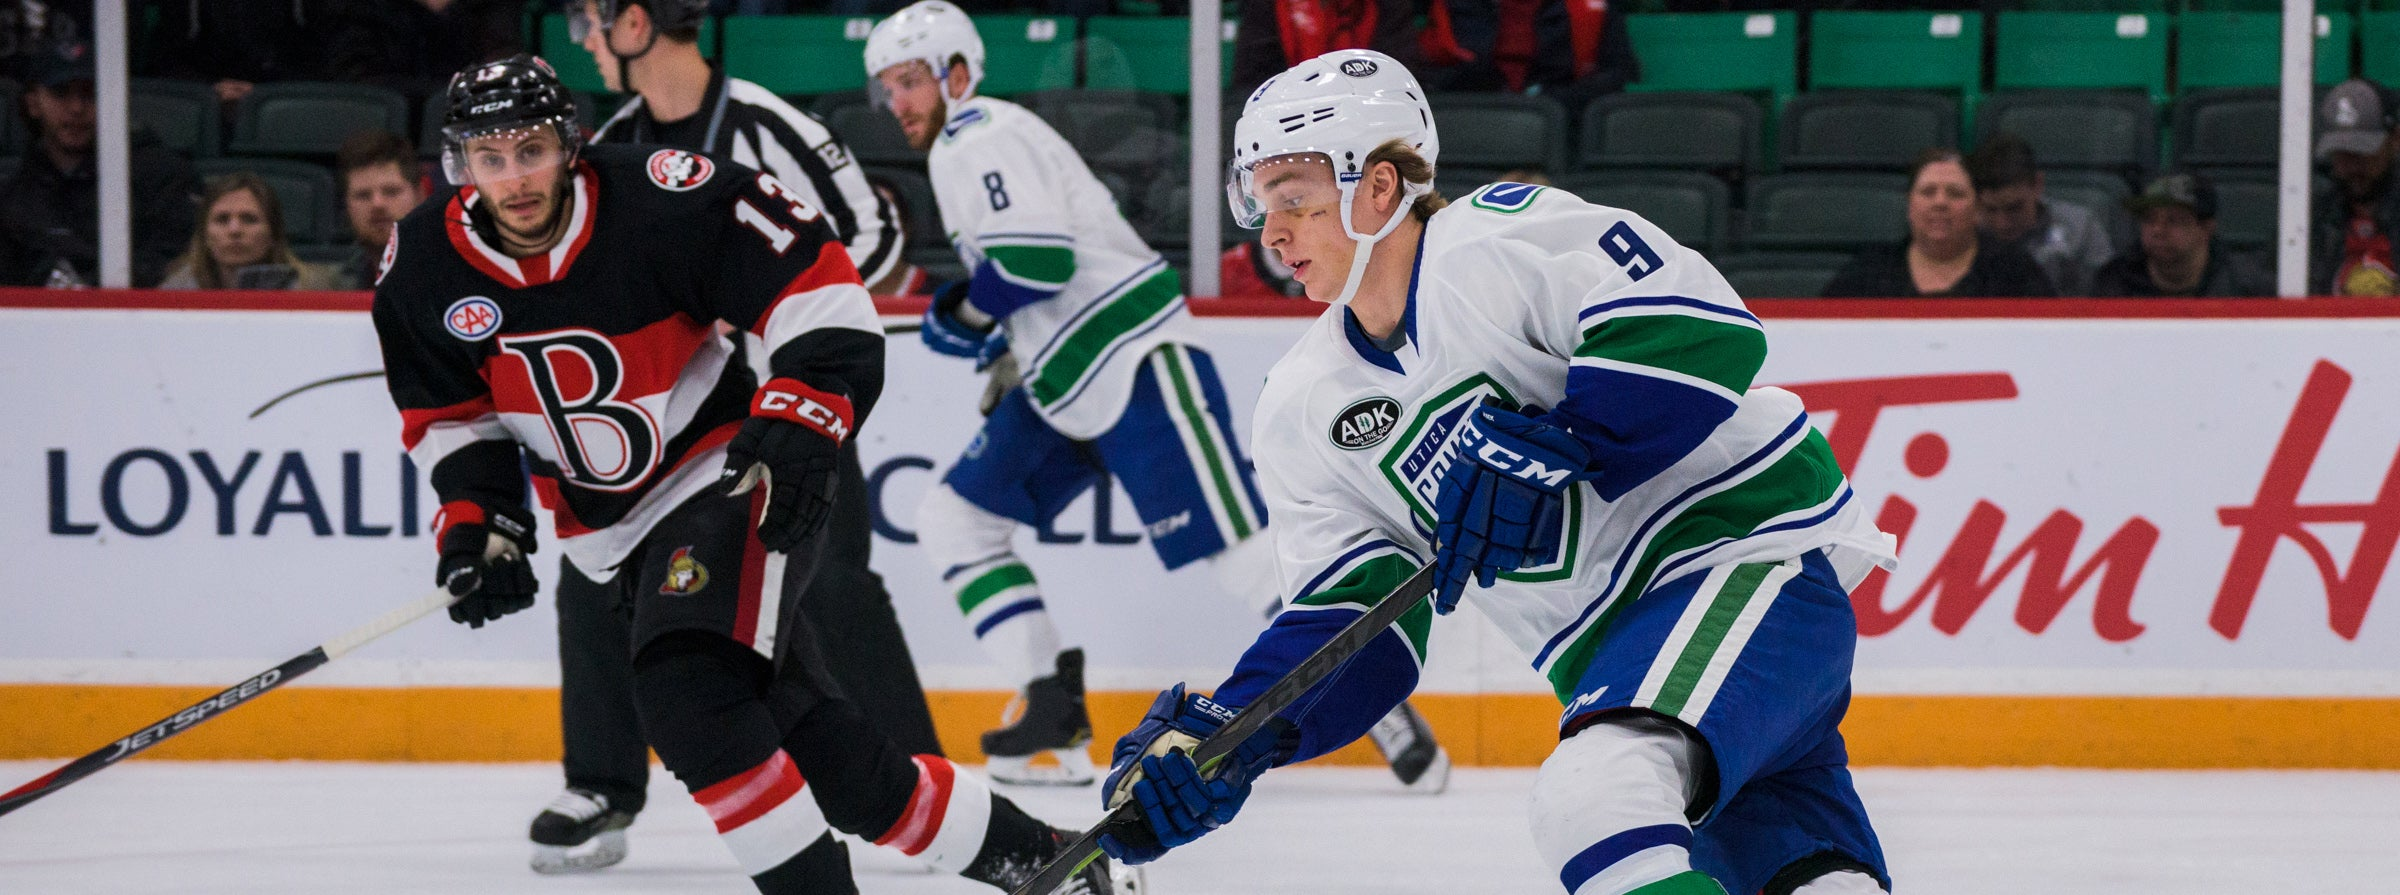 COMETS LATE PUSH NOT ENOUGH IN BELLEVILLE